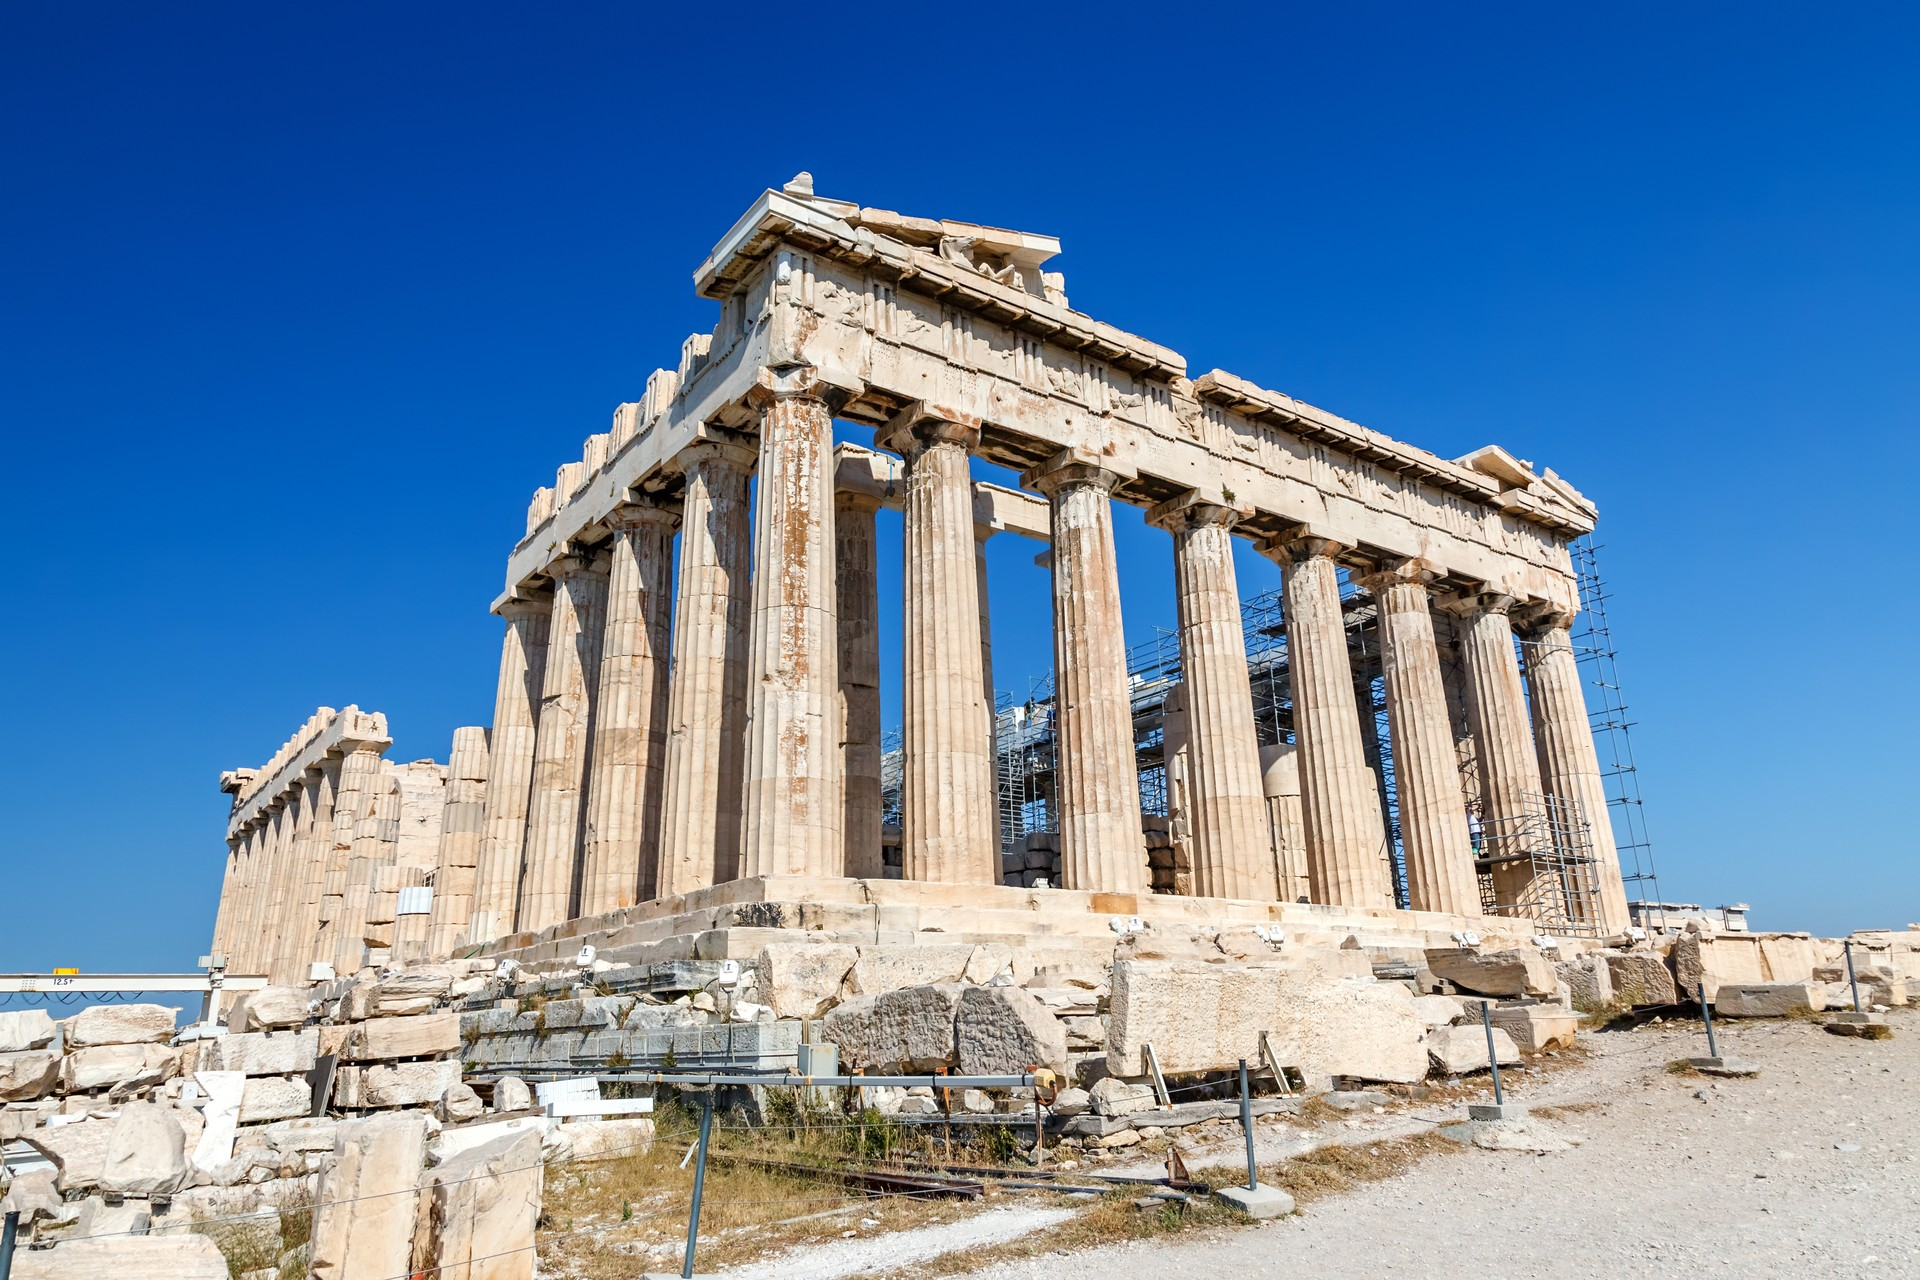 The Acropolis in Greece